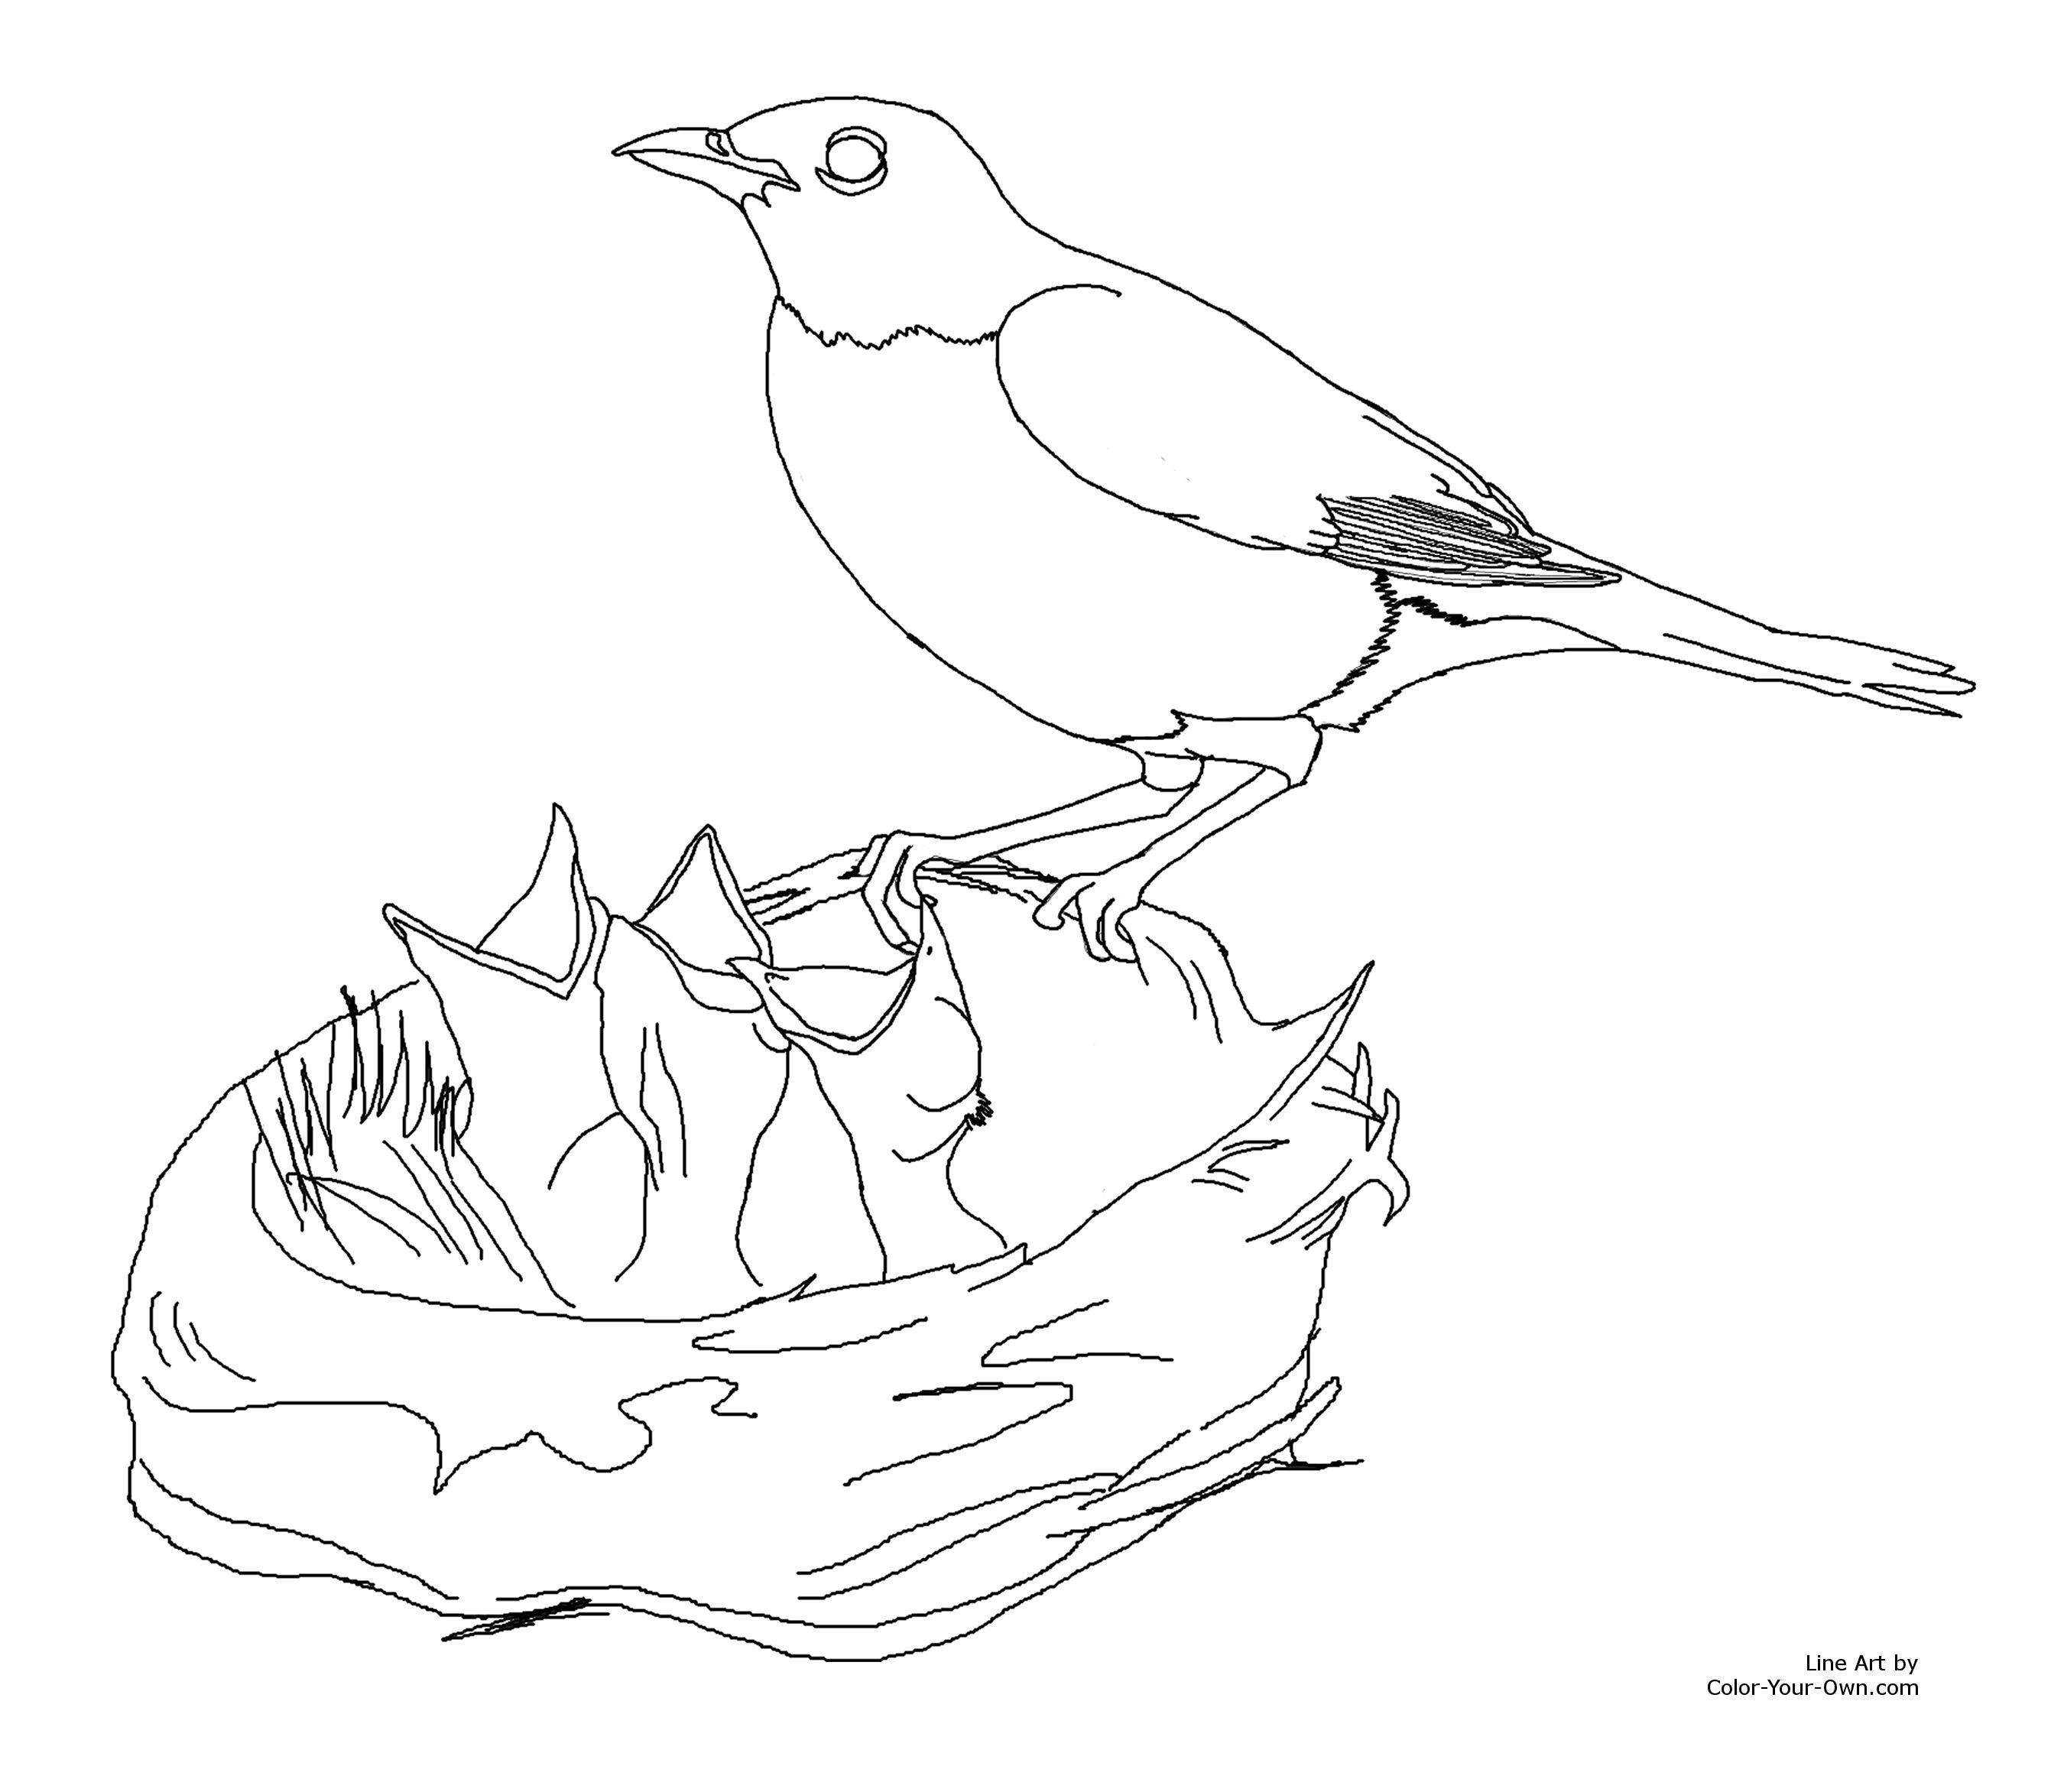 Wild Bird Coloring Pages at GetDrawings.com | Free for personal use ...